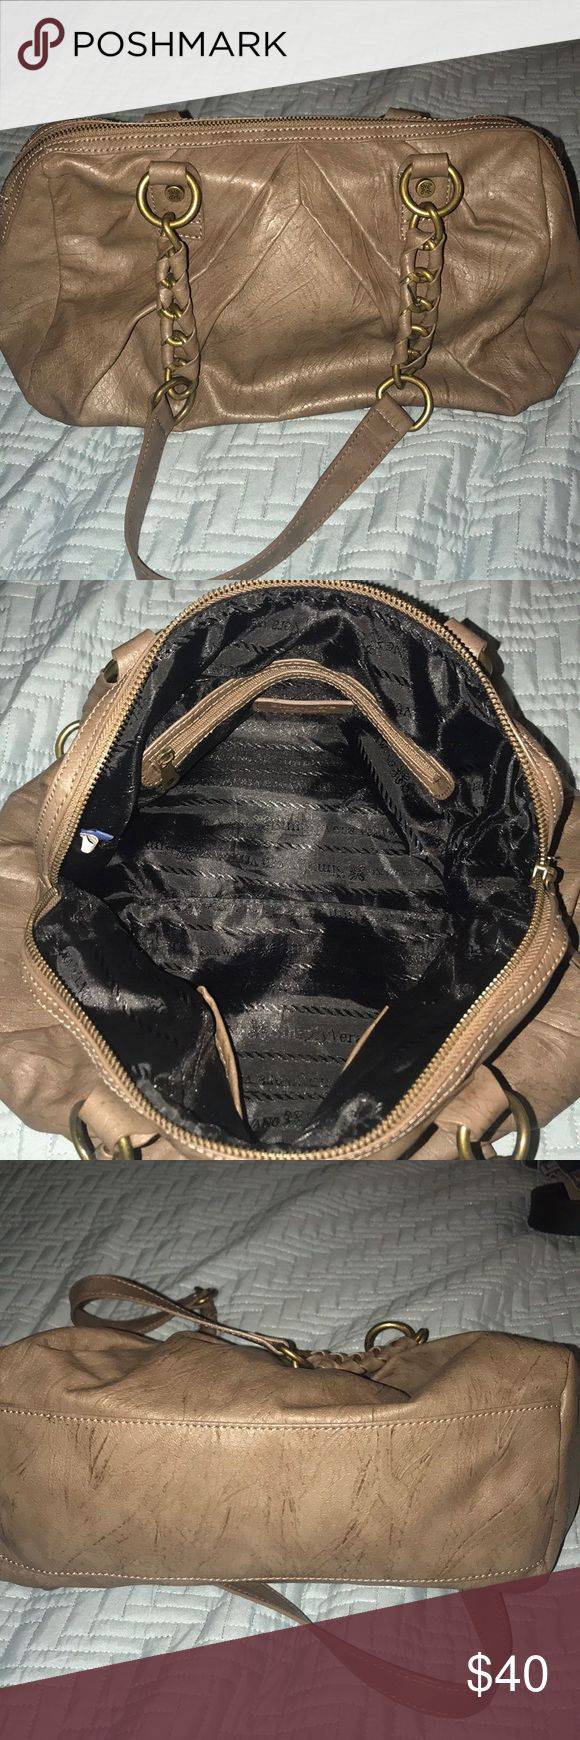 Simply Vera Vera Wang Bag •Simply Vera Wang Bag •Simply Vera Wang •Color: Brown  •Leather •Shoulder Bag •Super Condition   •Used one time •Measurements on Last pics Simply Vera Vera Wang Bags Shoulder Bags